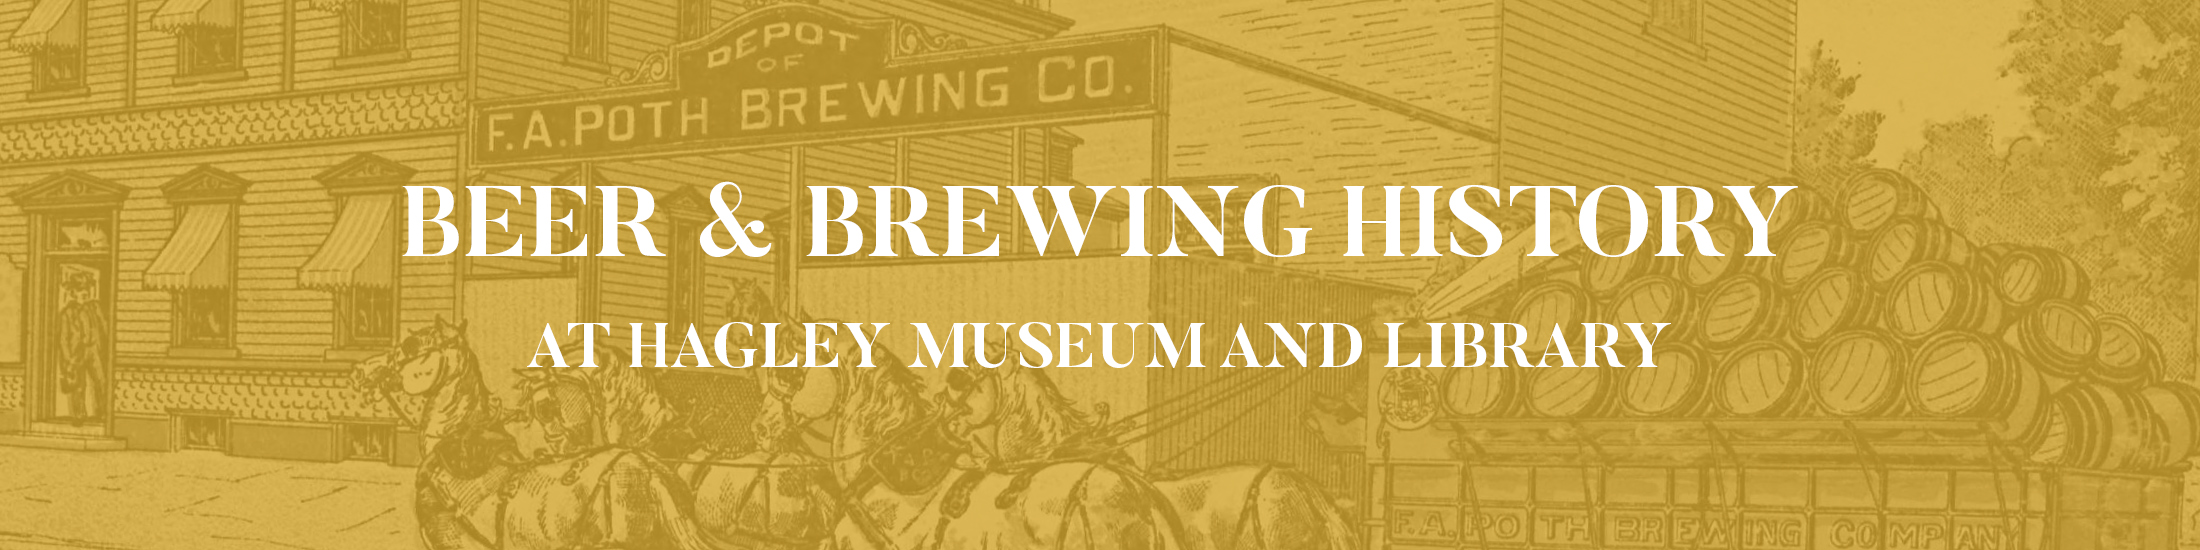 Beer and Brewing History Digital Exhibit at Hagley Museum and Library